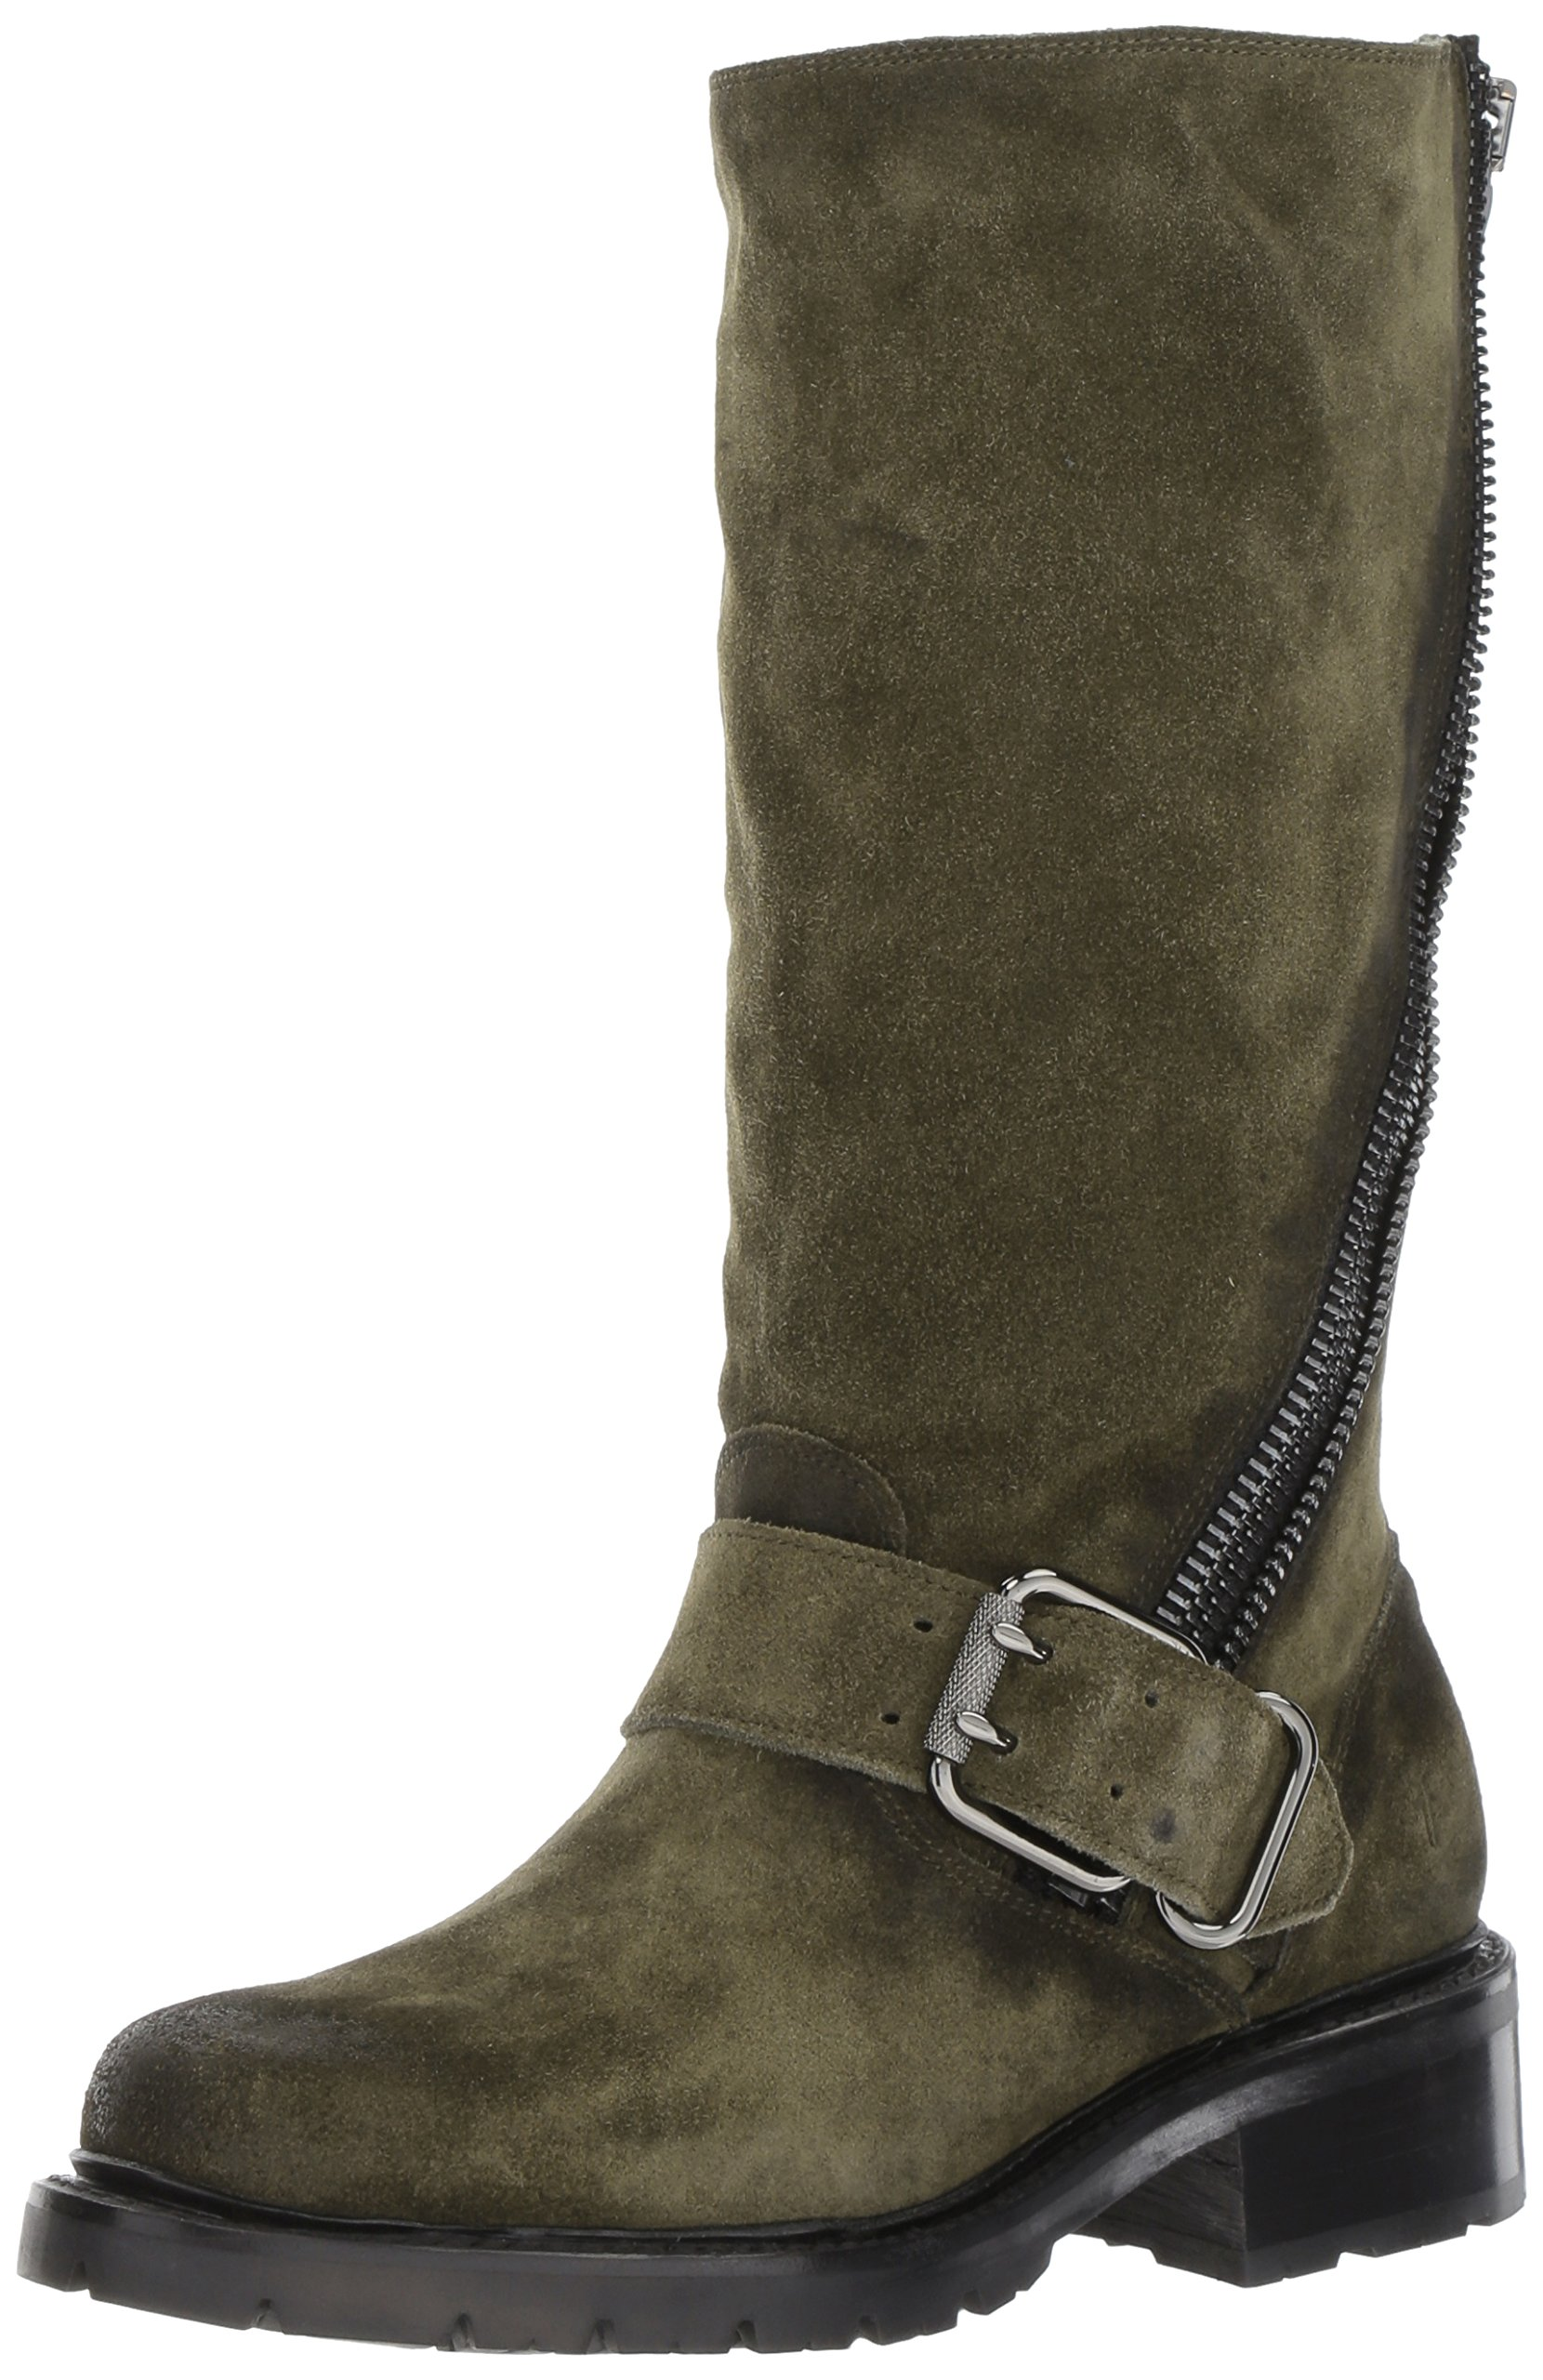 FRYE Women's Samantha Zip Tall Motorcycle Boot, Forest Soft Oiled Suede, 8 M US